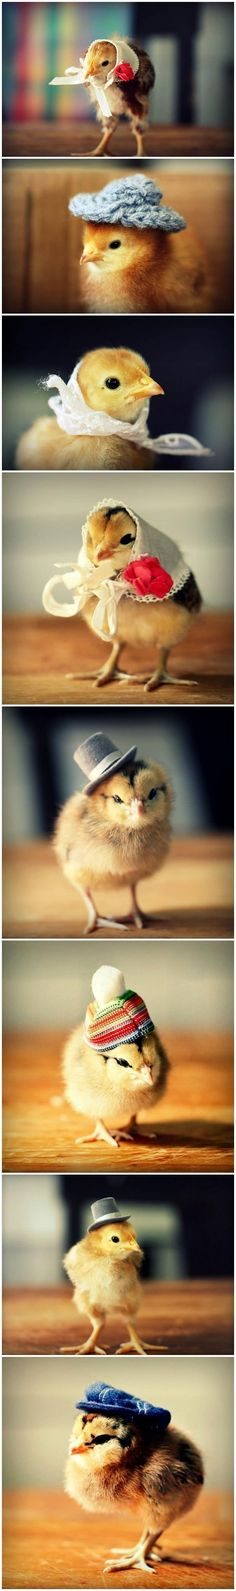 Chicks in hats!